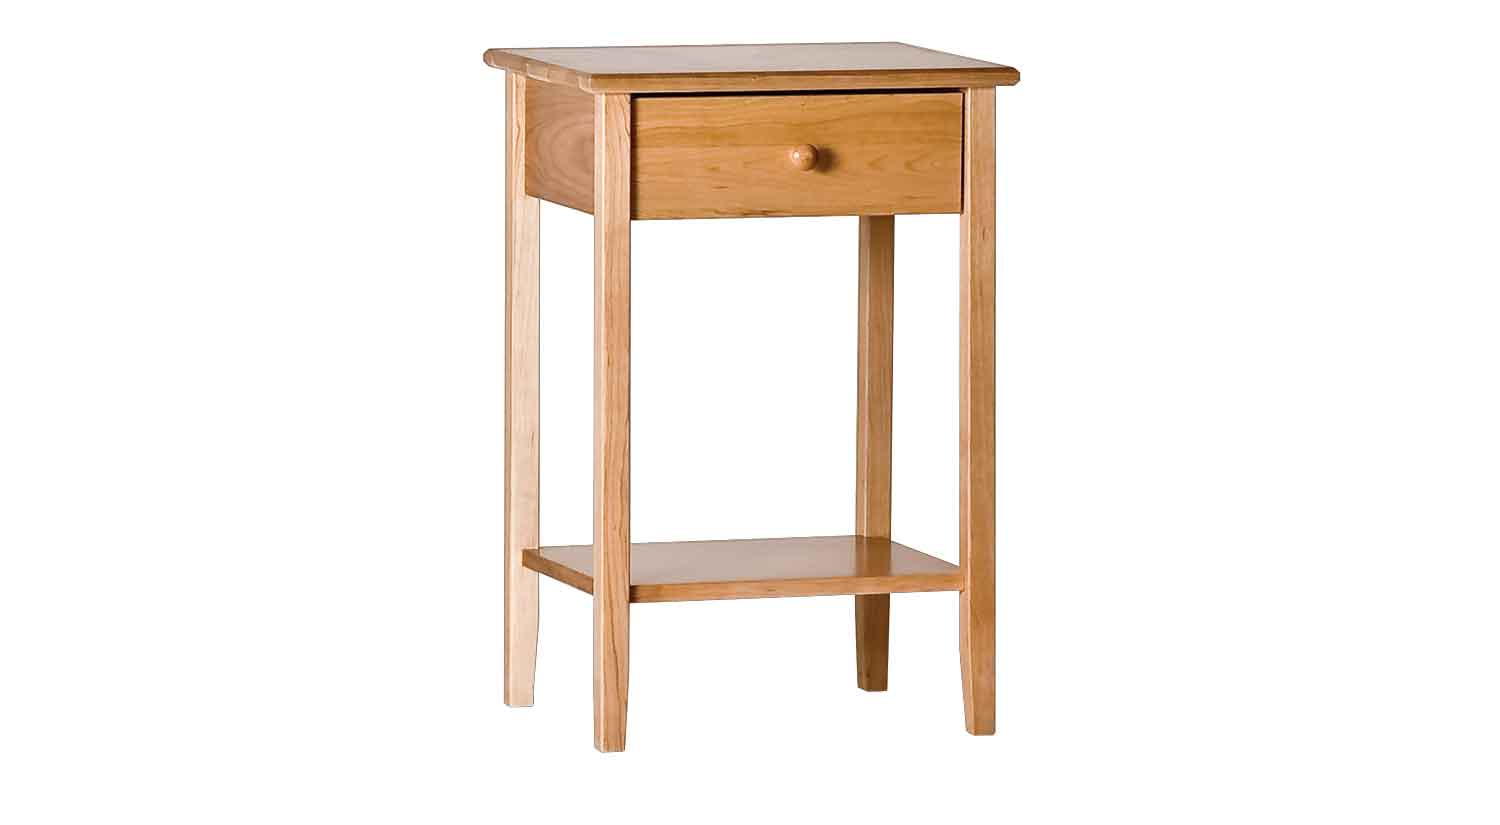 circle furniture shaker tall side table accent tables wood barn door entry home goods rugs outdoor top covers dining chairs for small spaces sheesham wooden large marble coffee